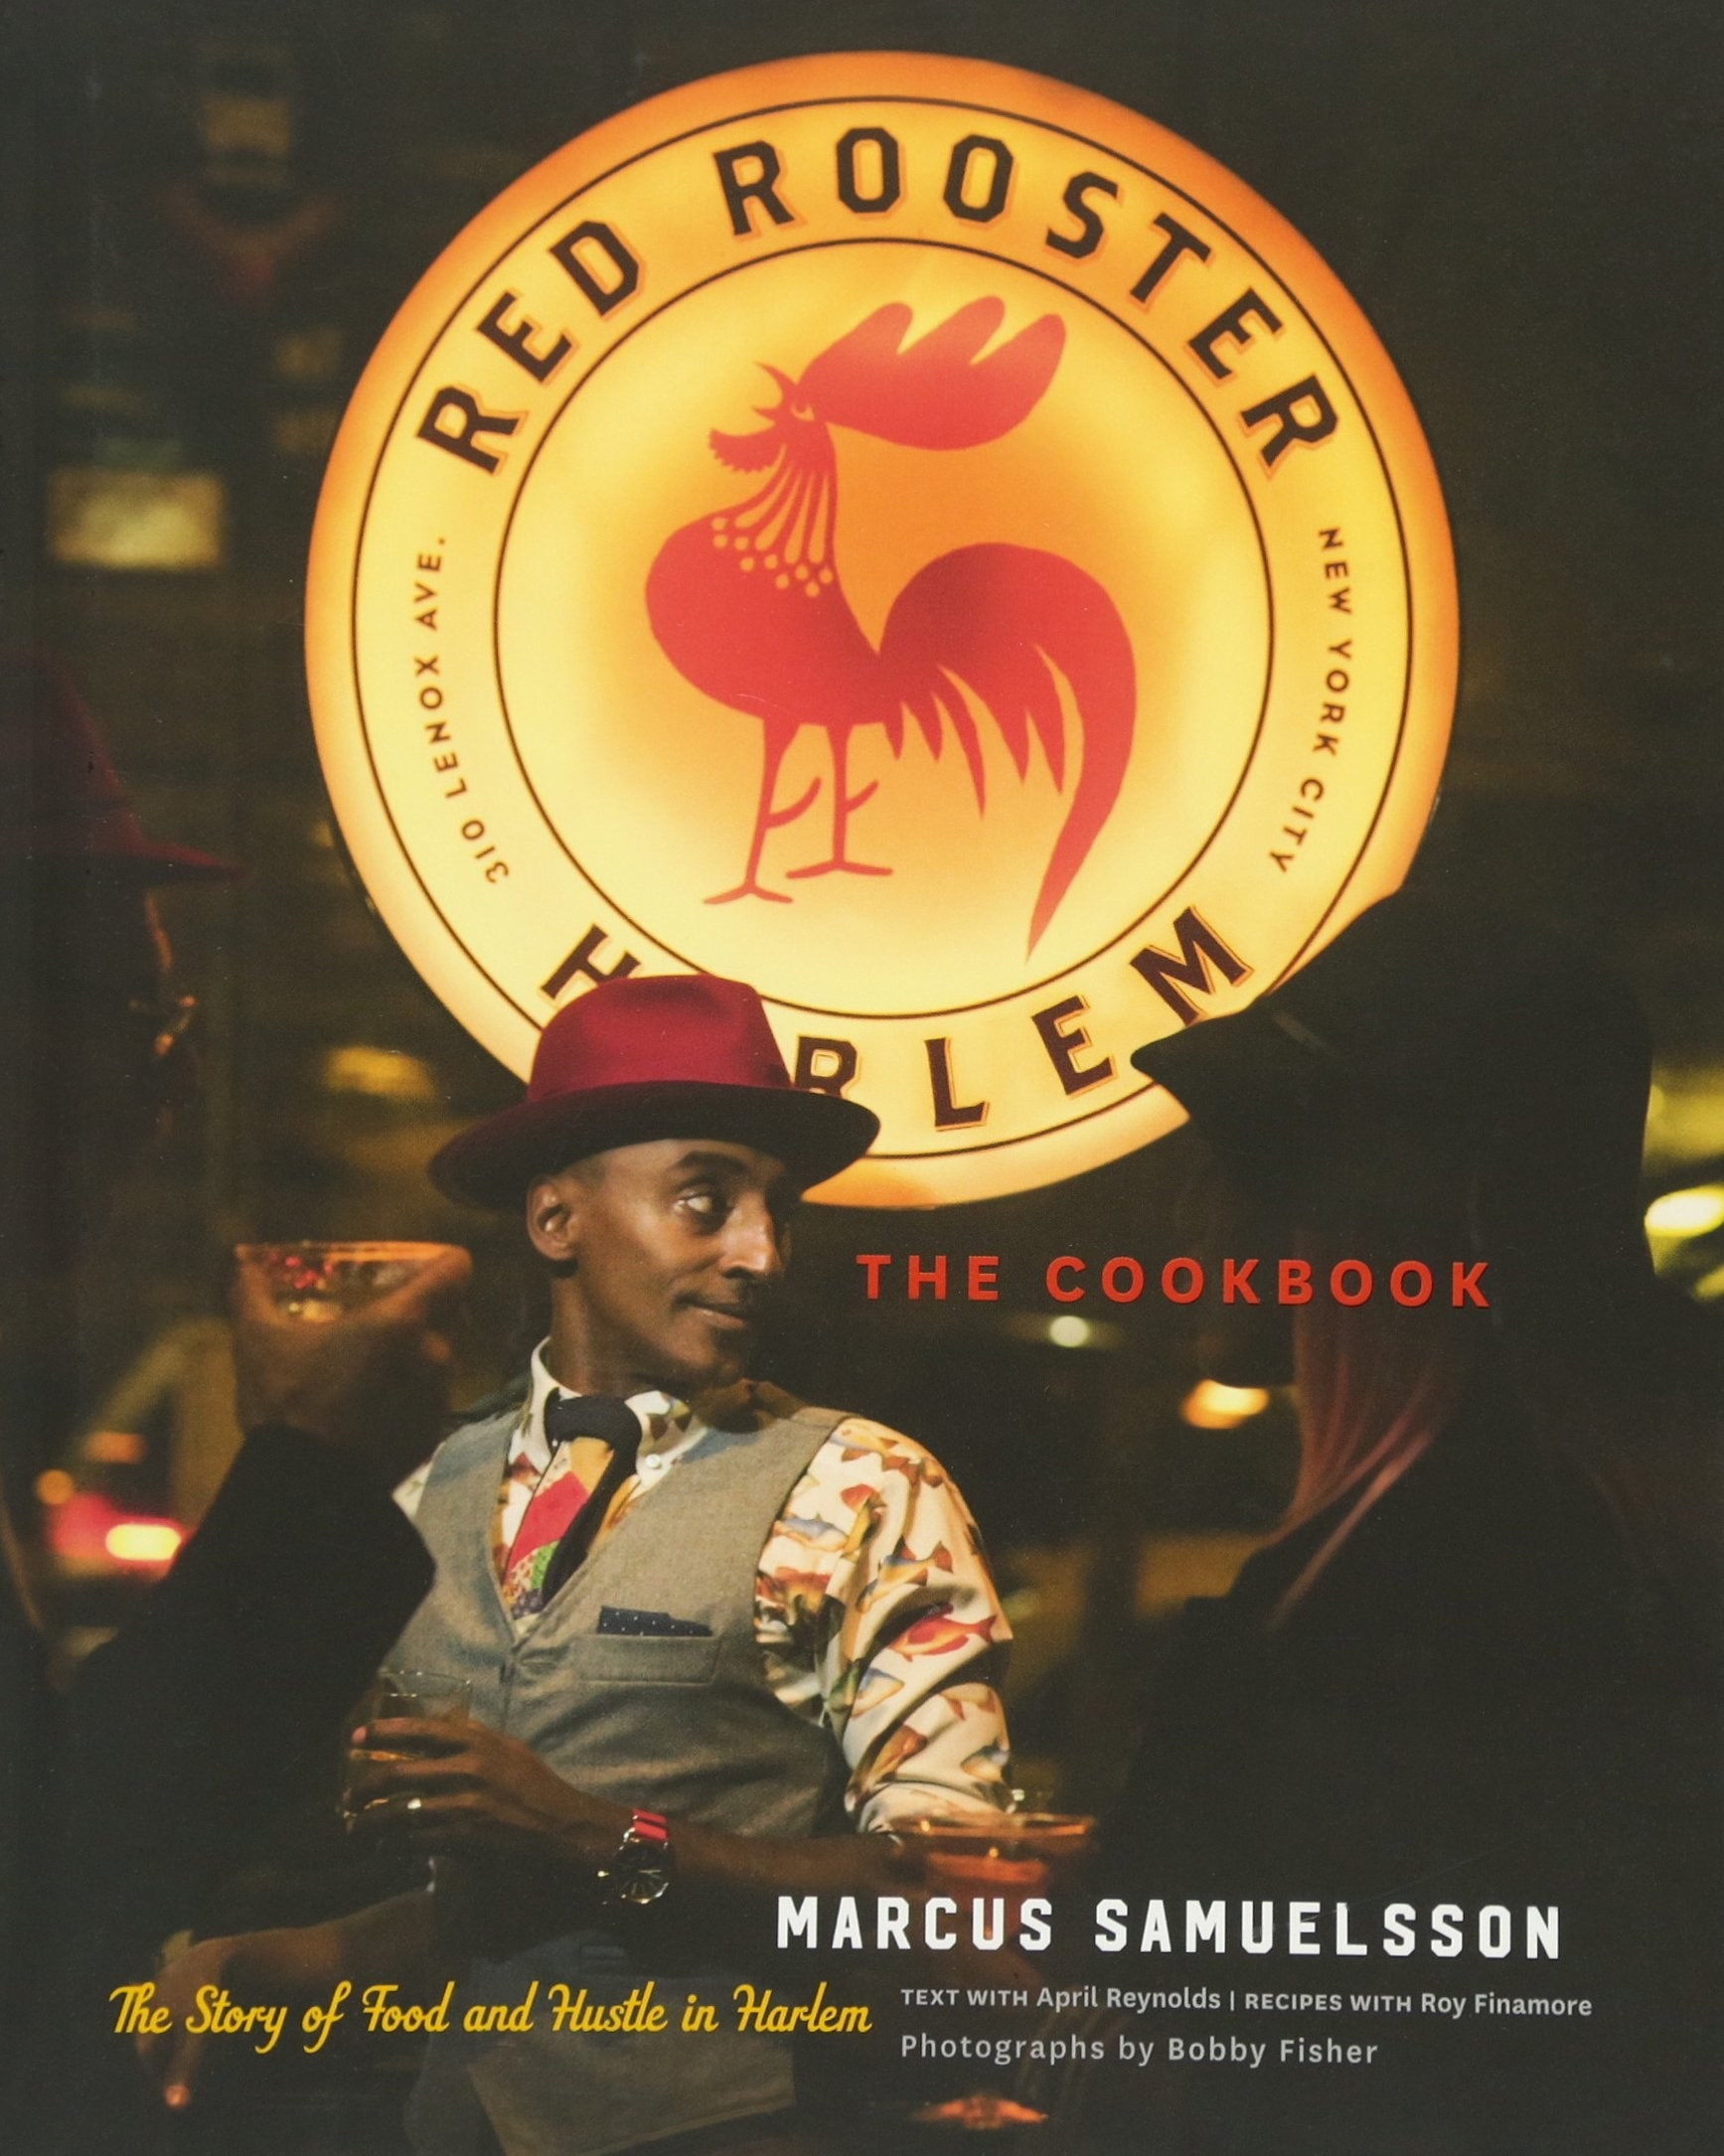 The cover which features author and chef Marcus Samuelsson